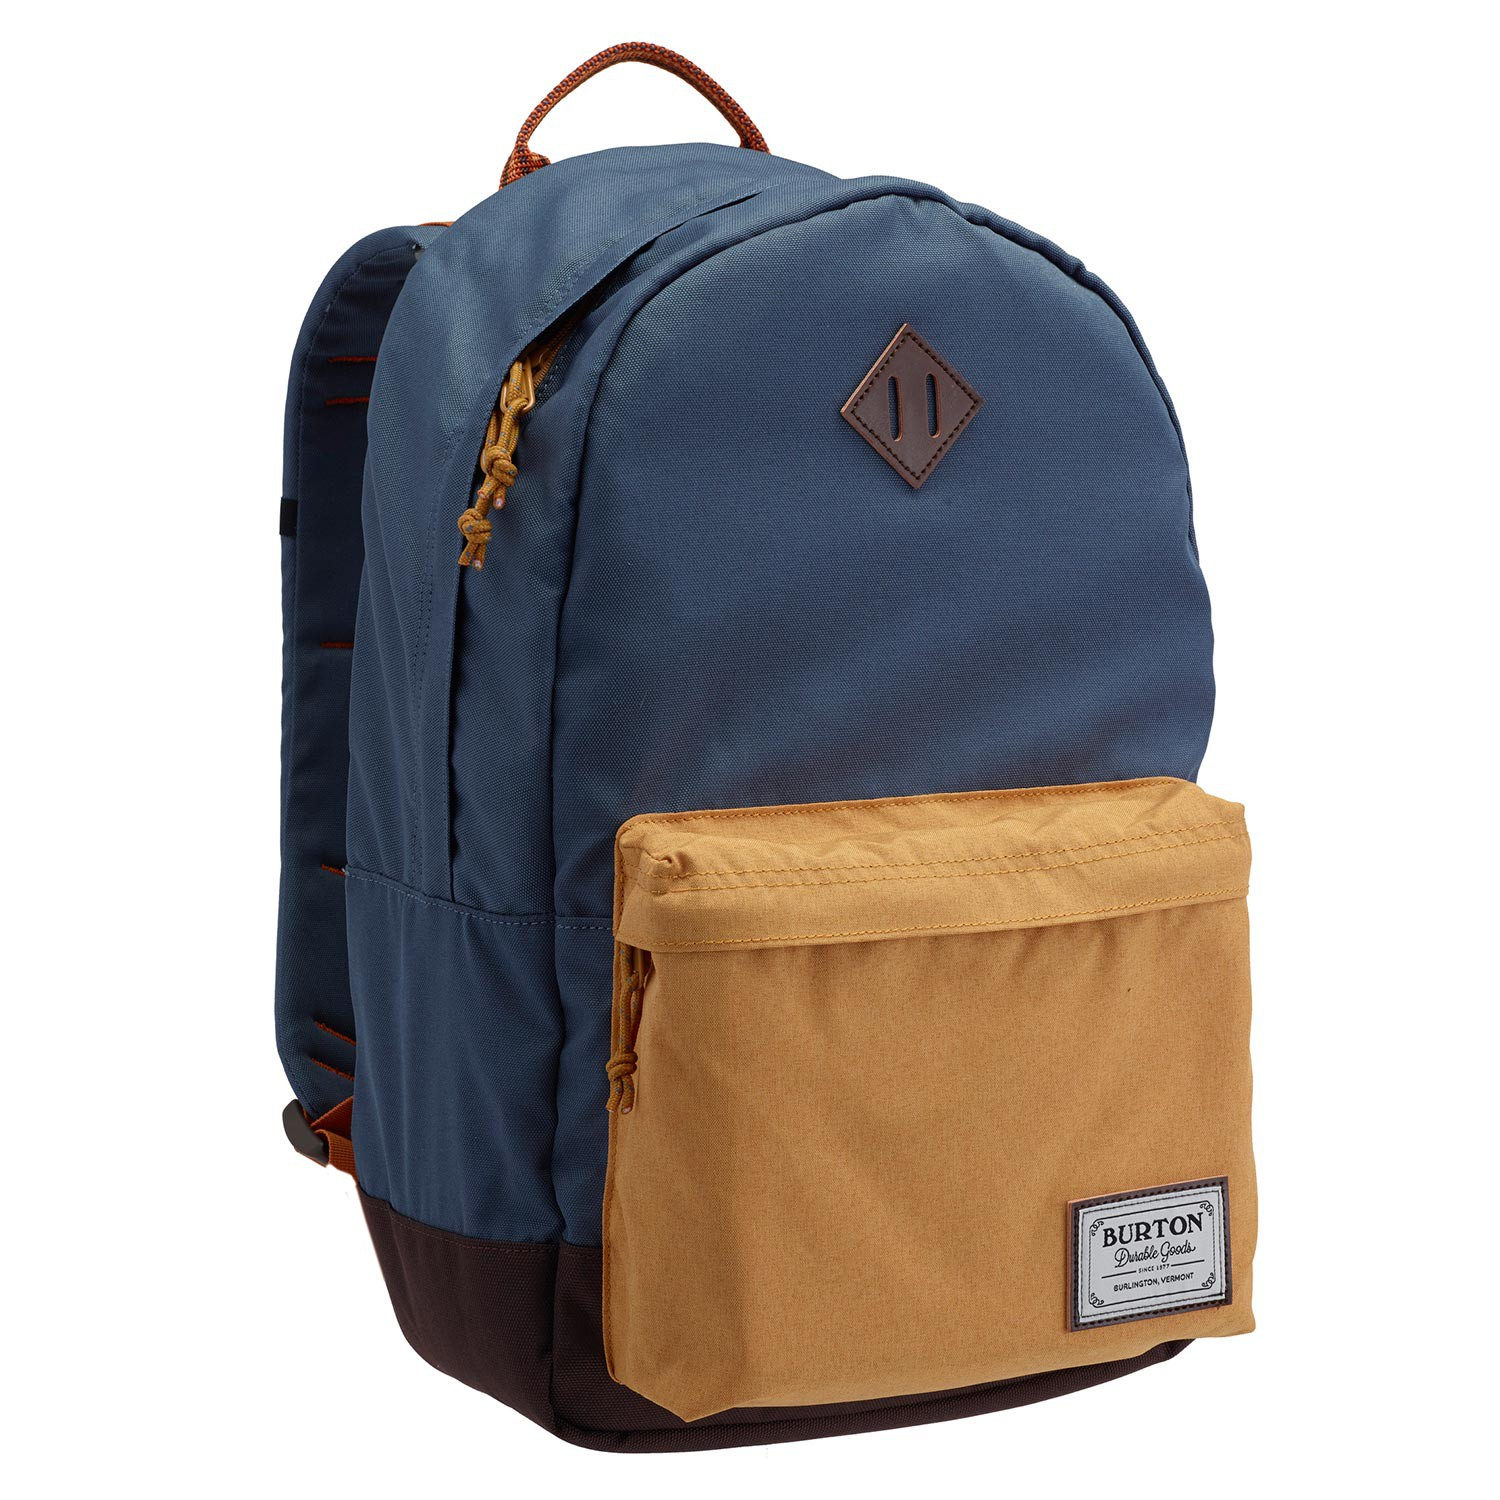 Batoh Burton Kettle washed blue